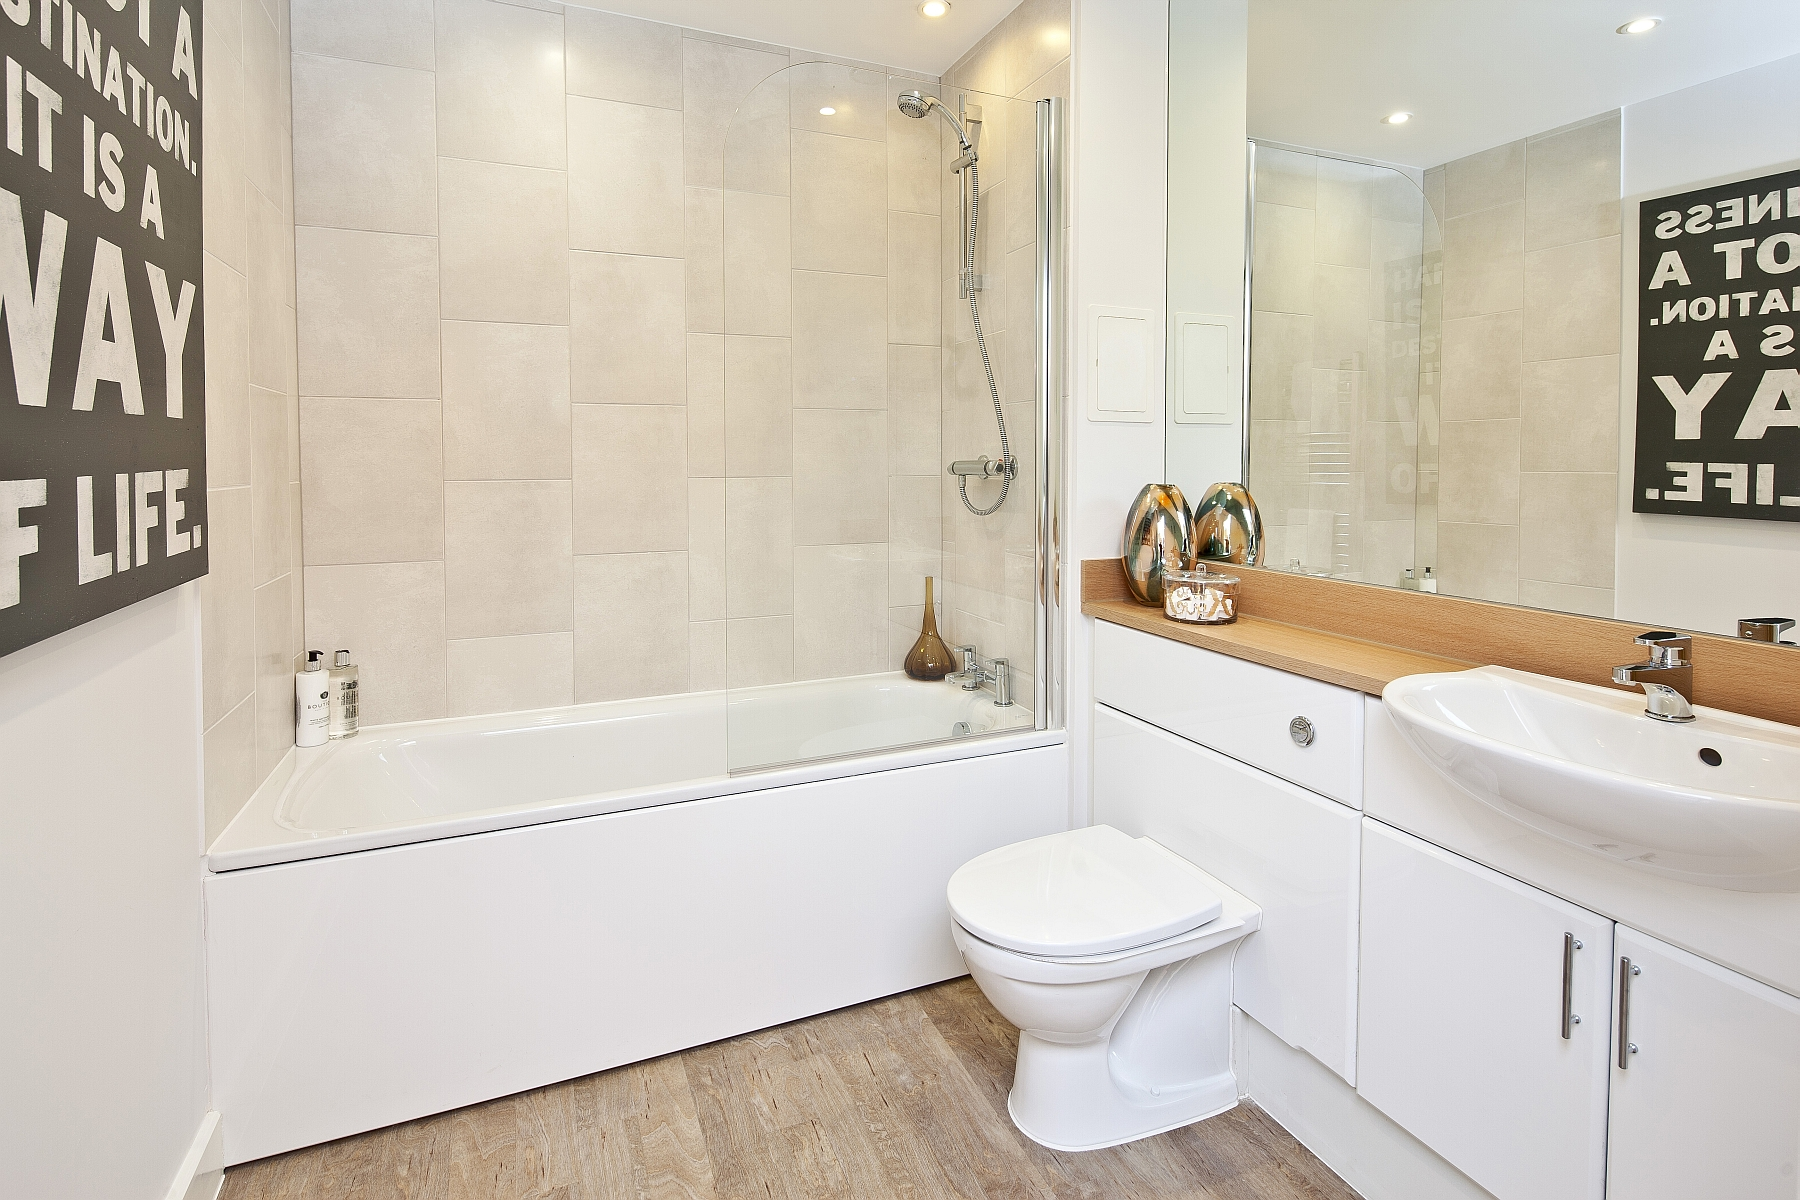 1 bed - bathroom